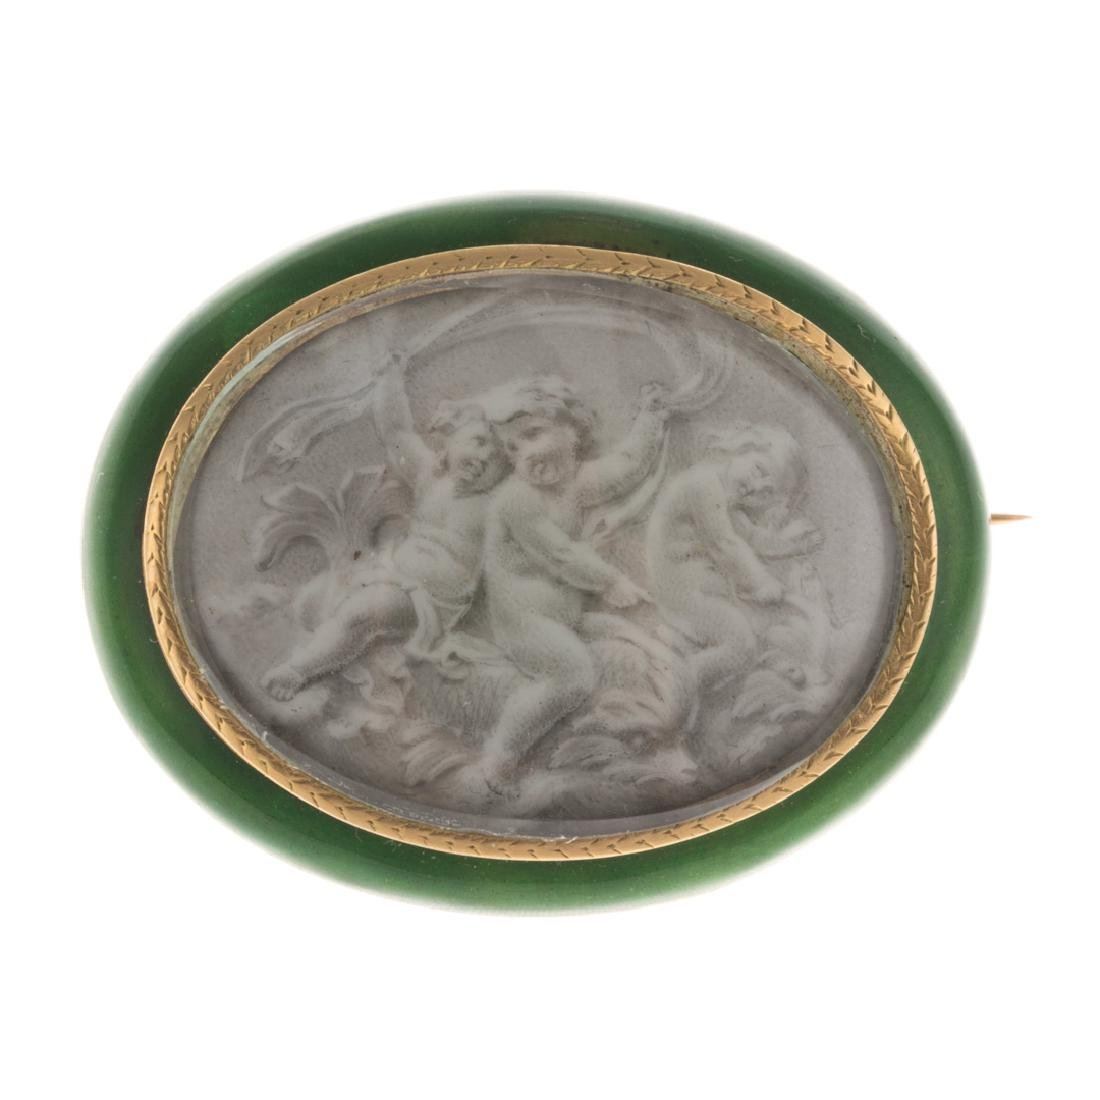 A 19th Century Gold Enamel Painted Brooch